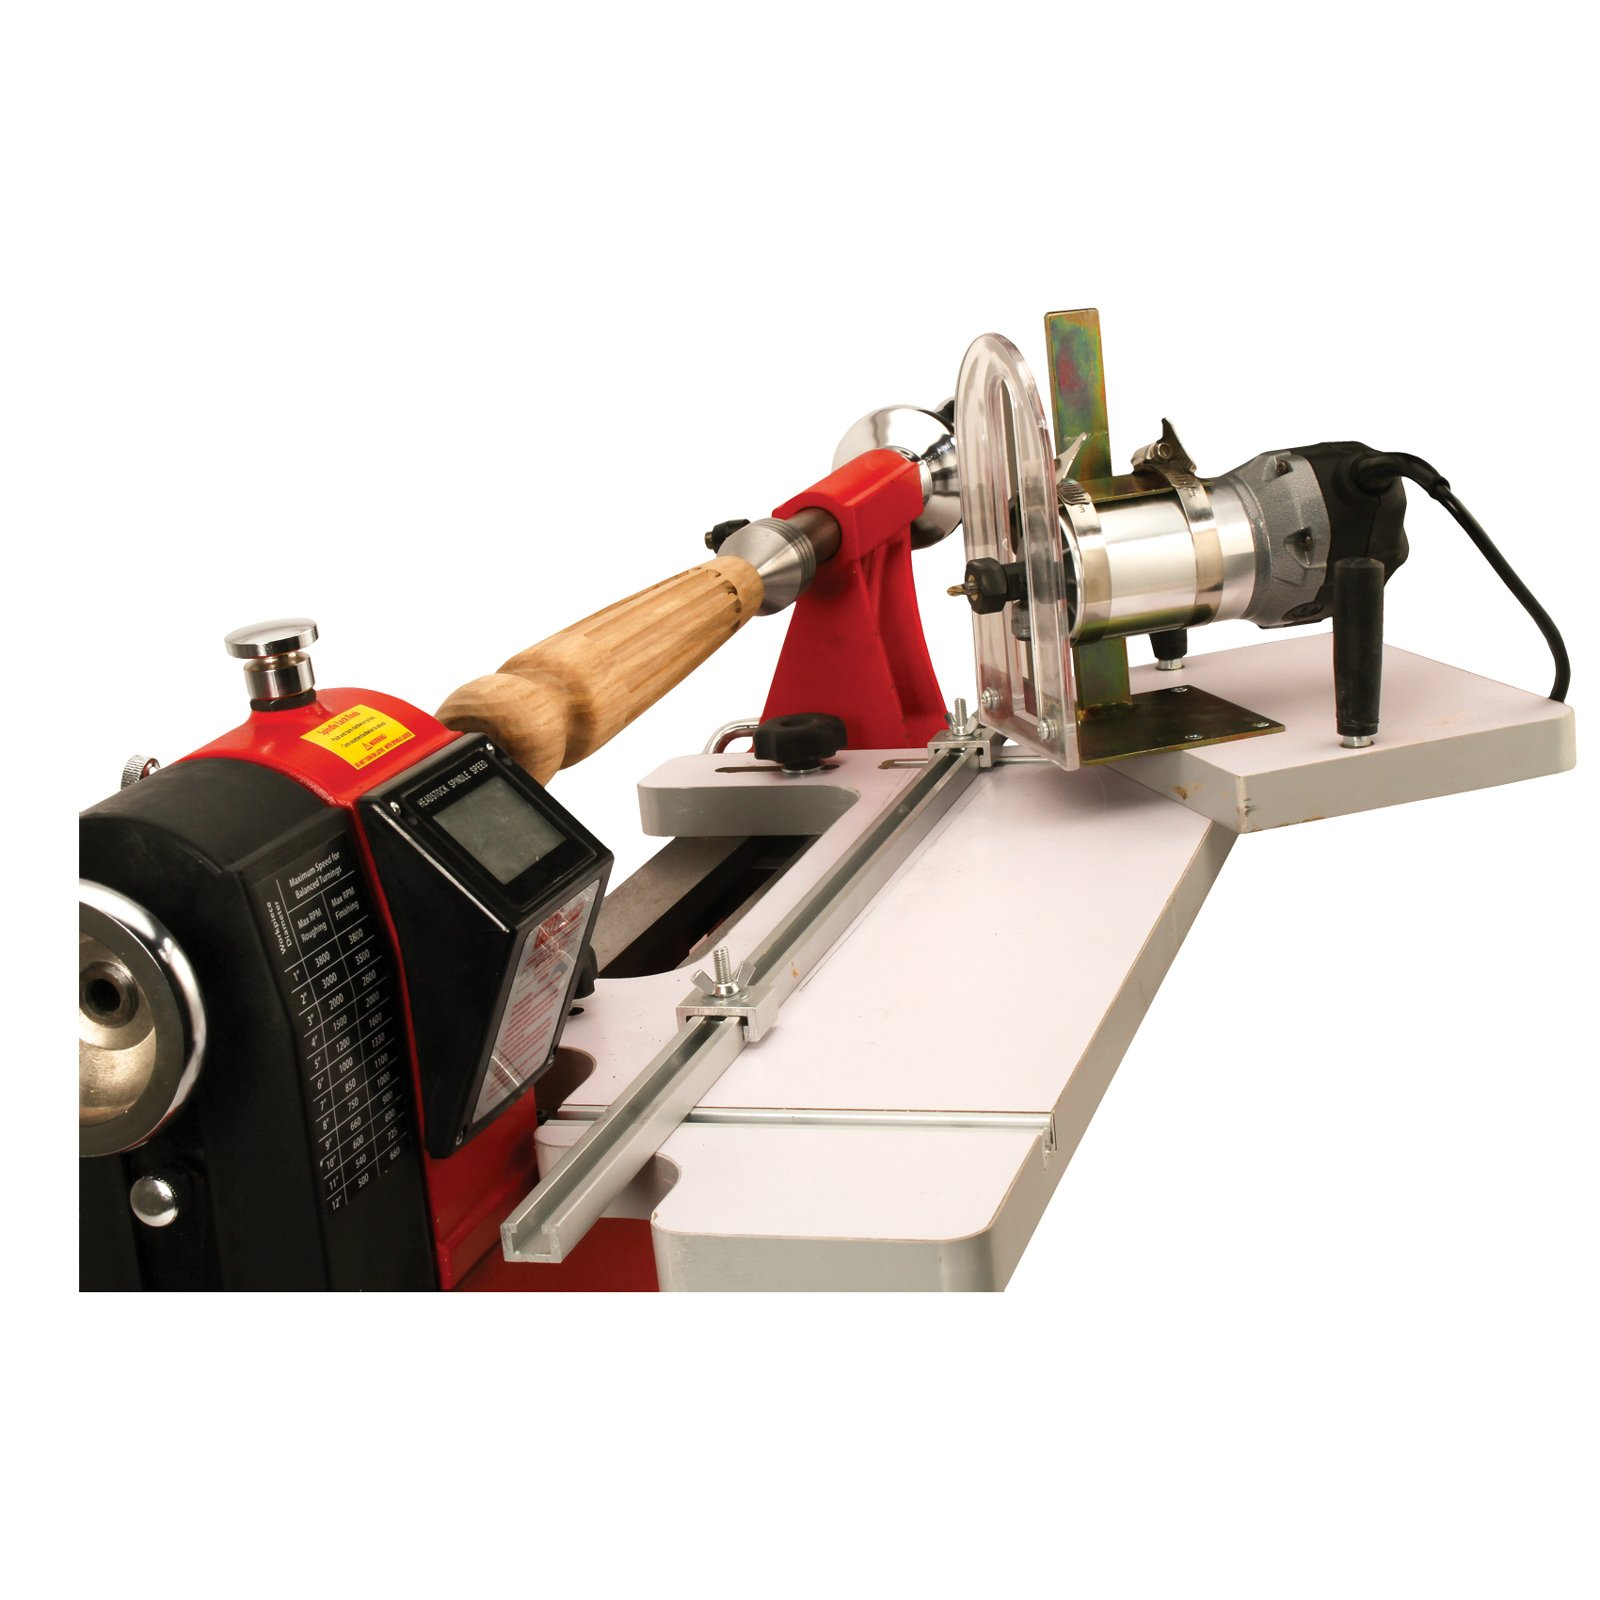 Lathe Mounted Fluting Guide with Router by PSI Woodworking